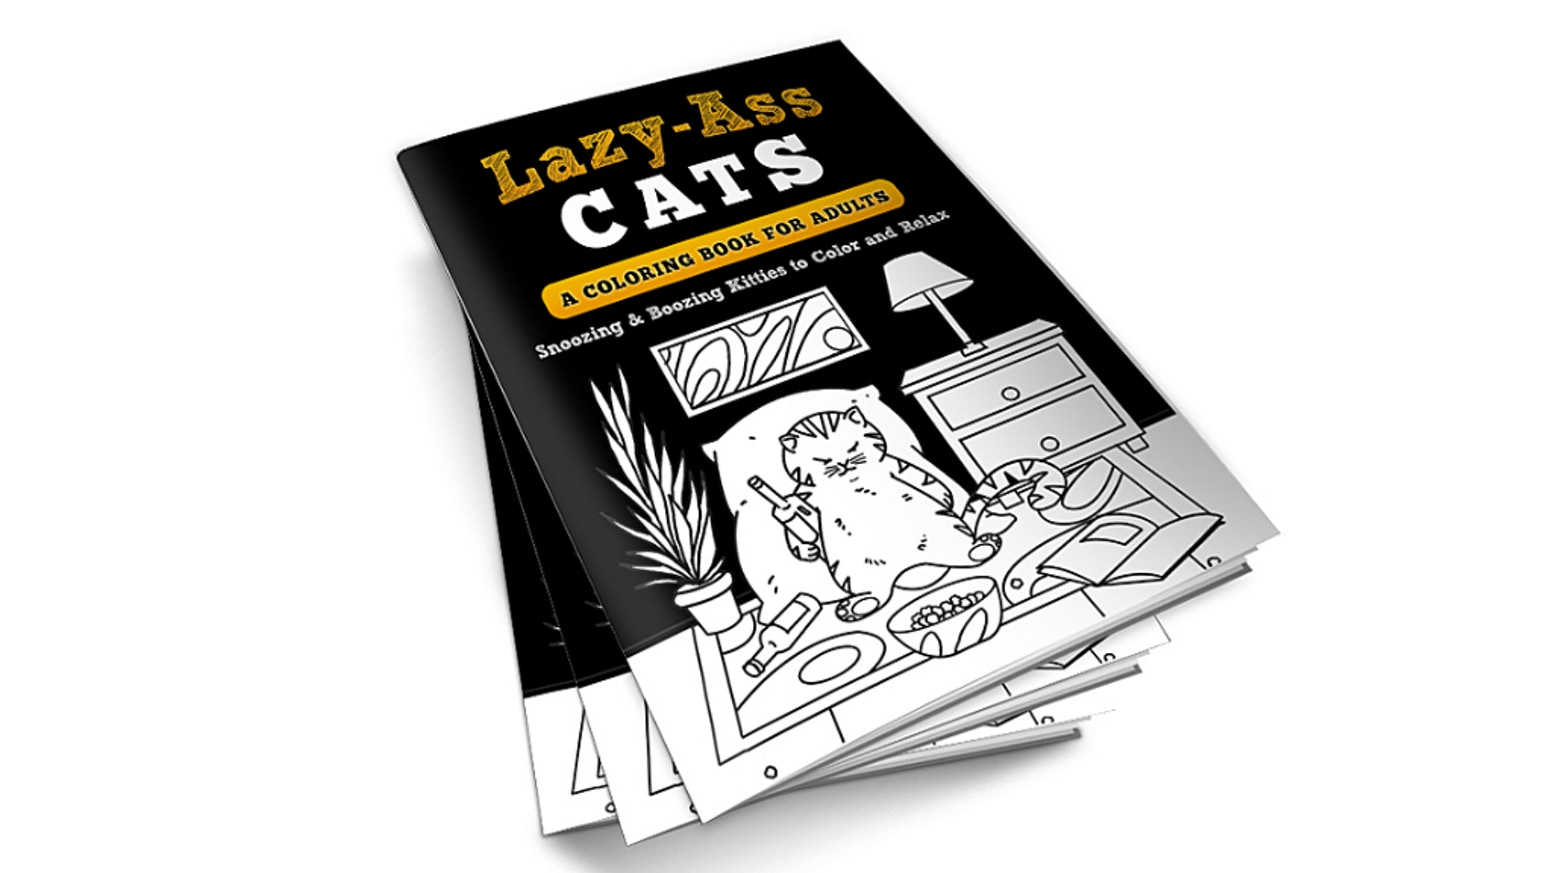 An adult coloring book filled with snoozing & boozing kitties for you to color and relax. Irreverent, fun, and super cute!